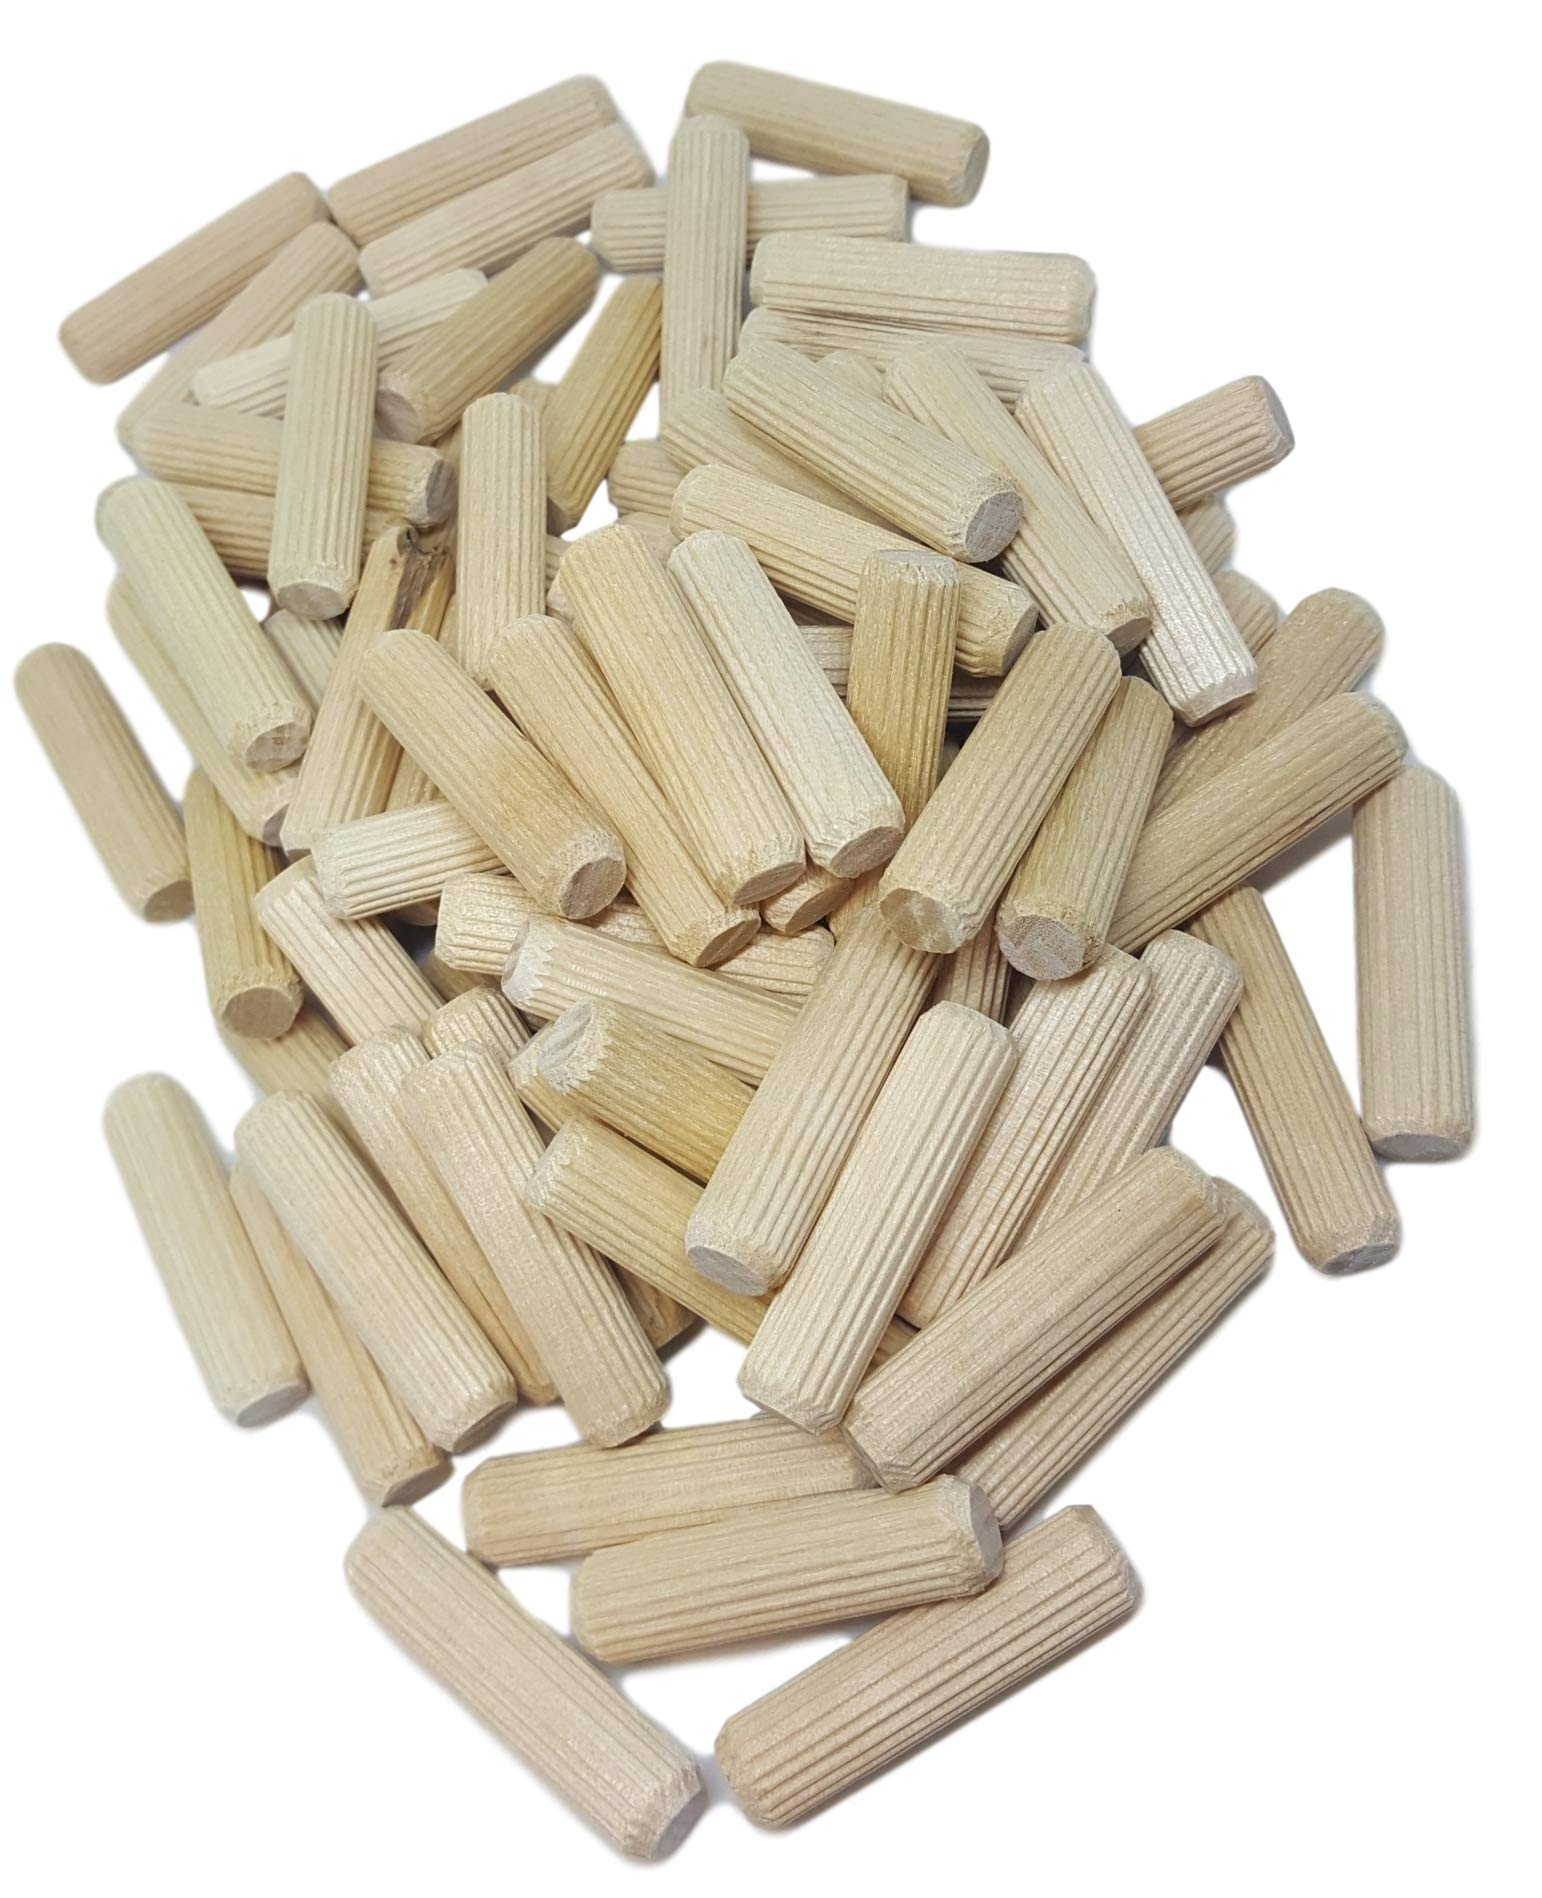 Made of Hardwood in U.S.A /… 100 Pack 1//4 x 1 Wooden Dowel Pins Wood Kiln Dried Fluted and Beveled